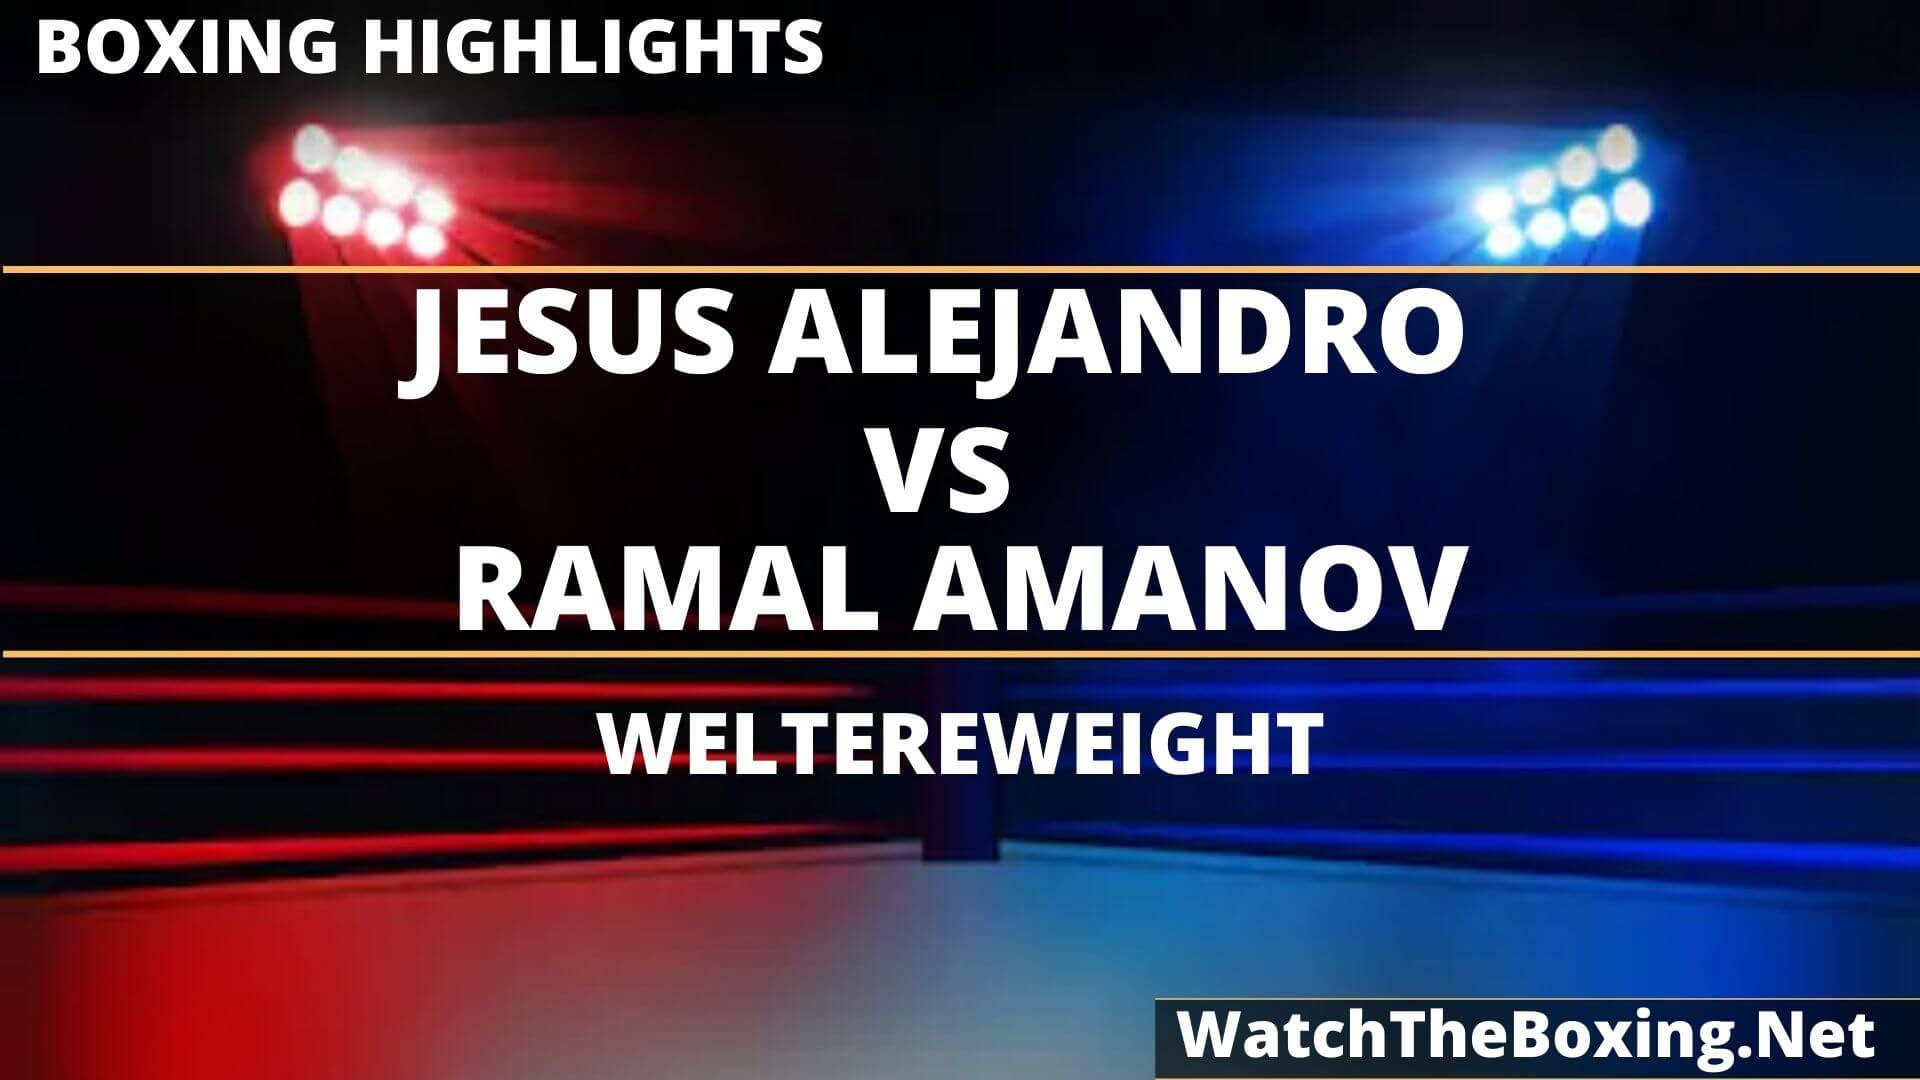 Jesus Alejandro Vs Ramal Amanov Highlights 2020